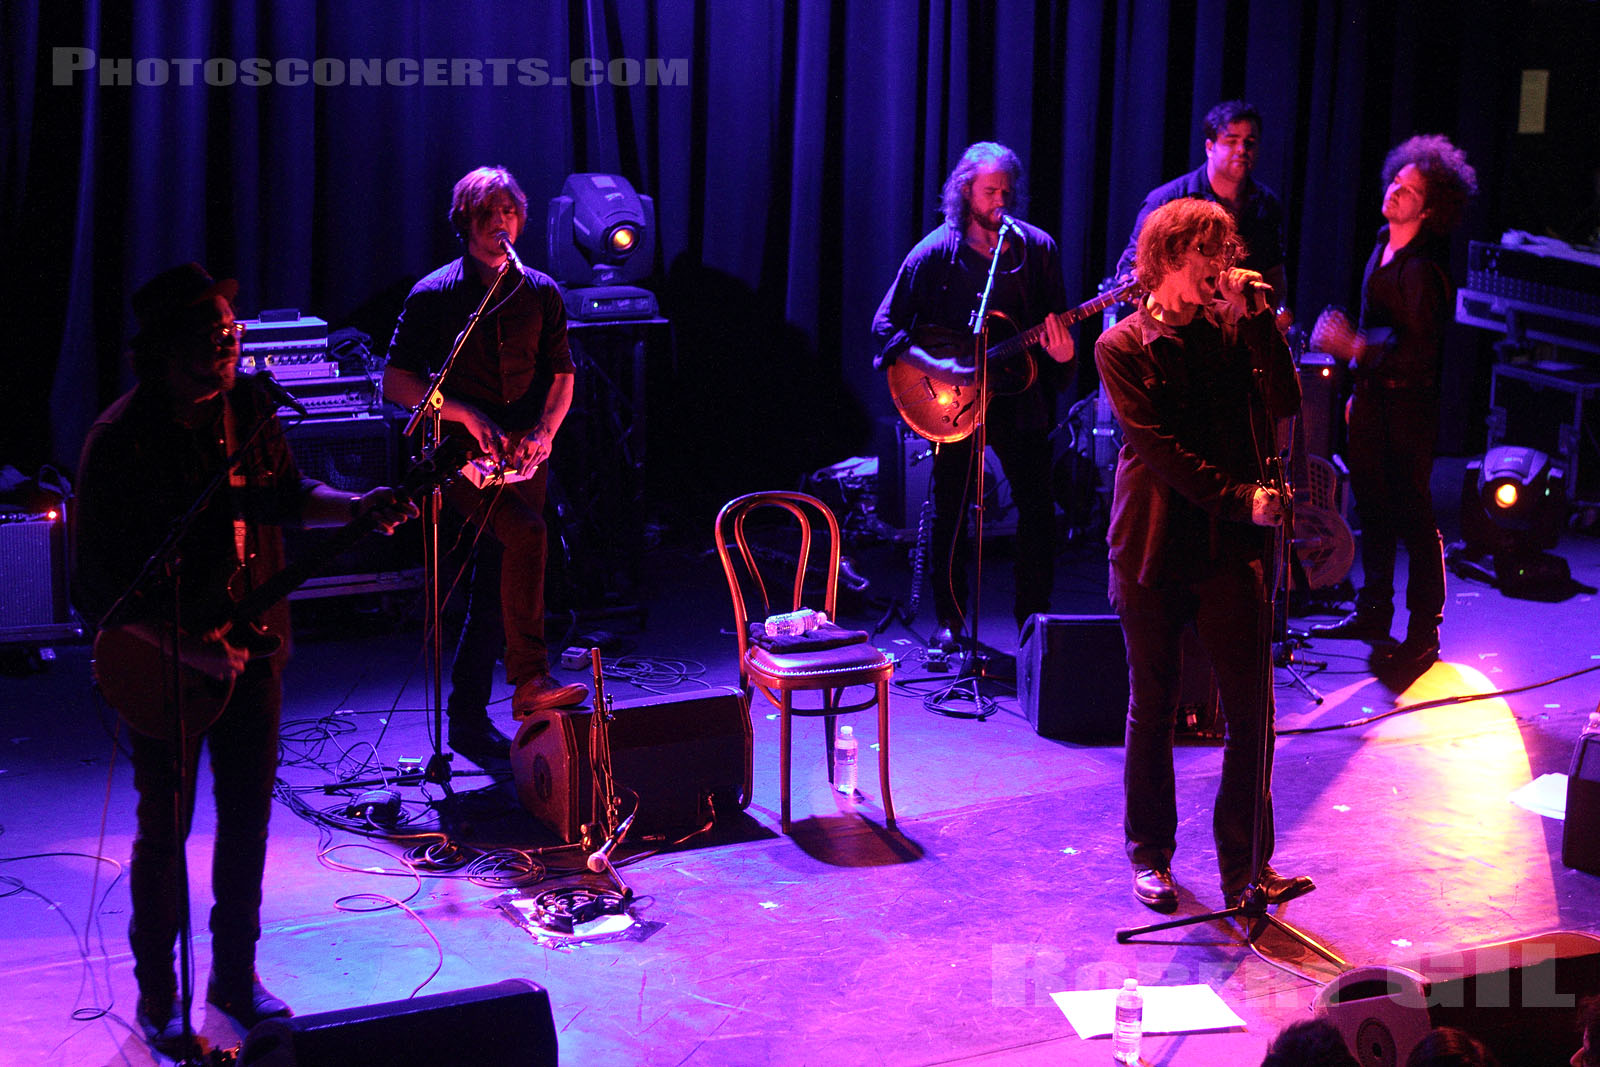 MARK LANEGAN - 2013-11-15 - PARIS - L'Alhambra